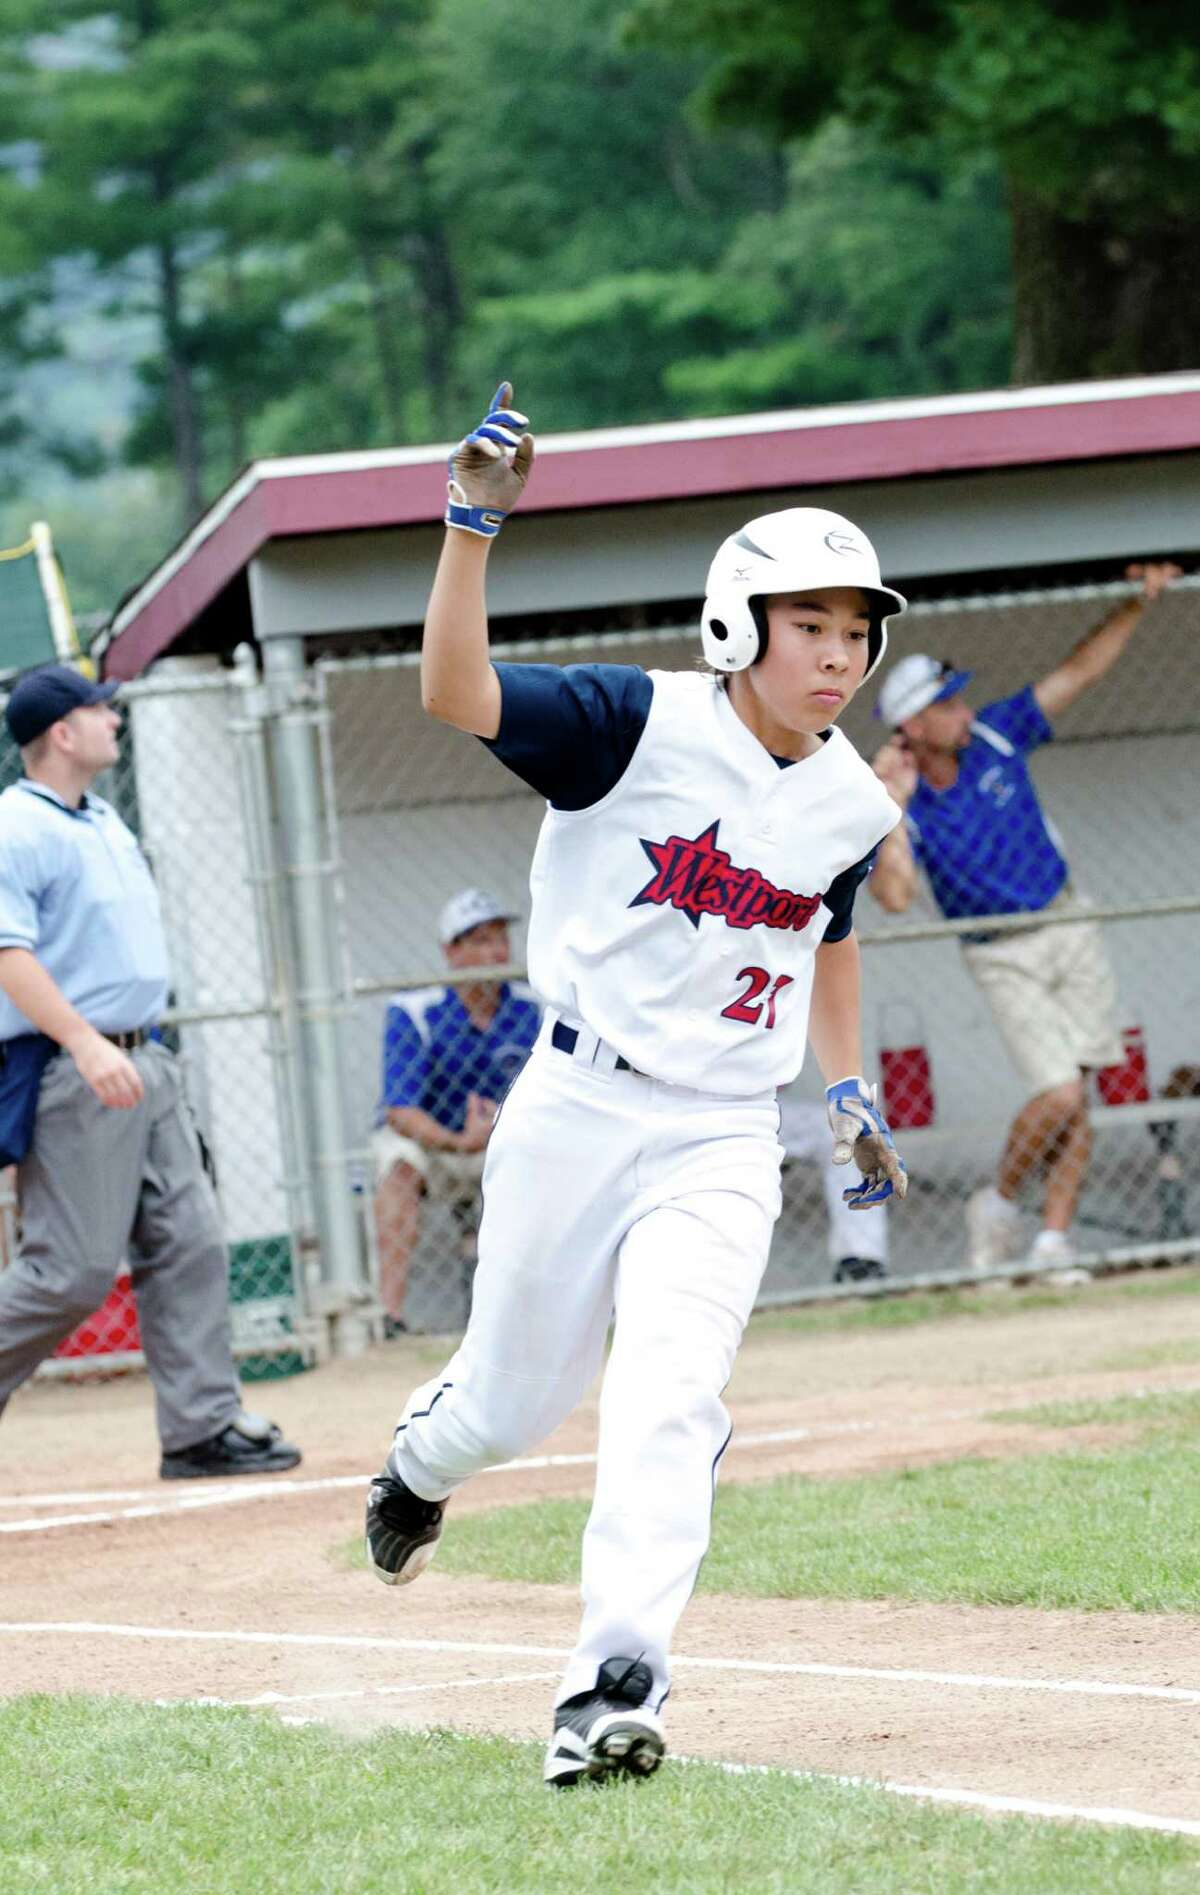 Westport's Chad Knight puts his hand in the air as he takes a victory lap around the bases during the 12-year-old Little League baseball state finals against Coginchaug at Southington South Little League at Recreation Park on Maxwell Noble Drive in Plantsville on Sunday, July 28, 2013.